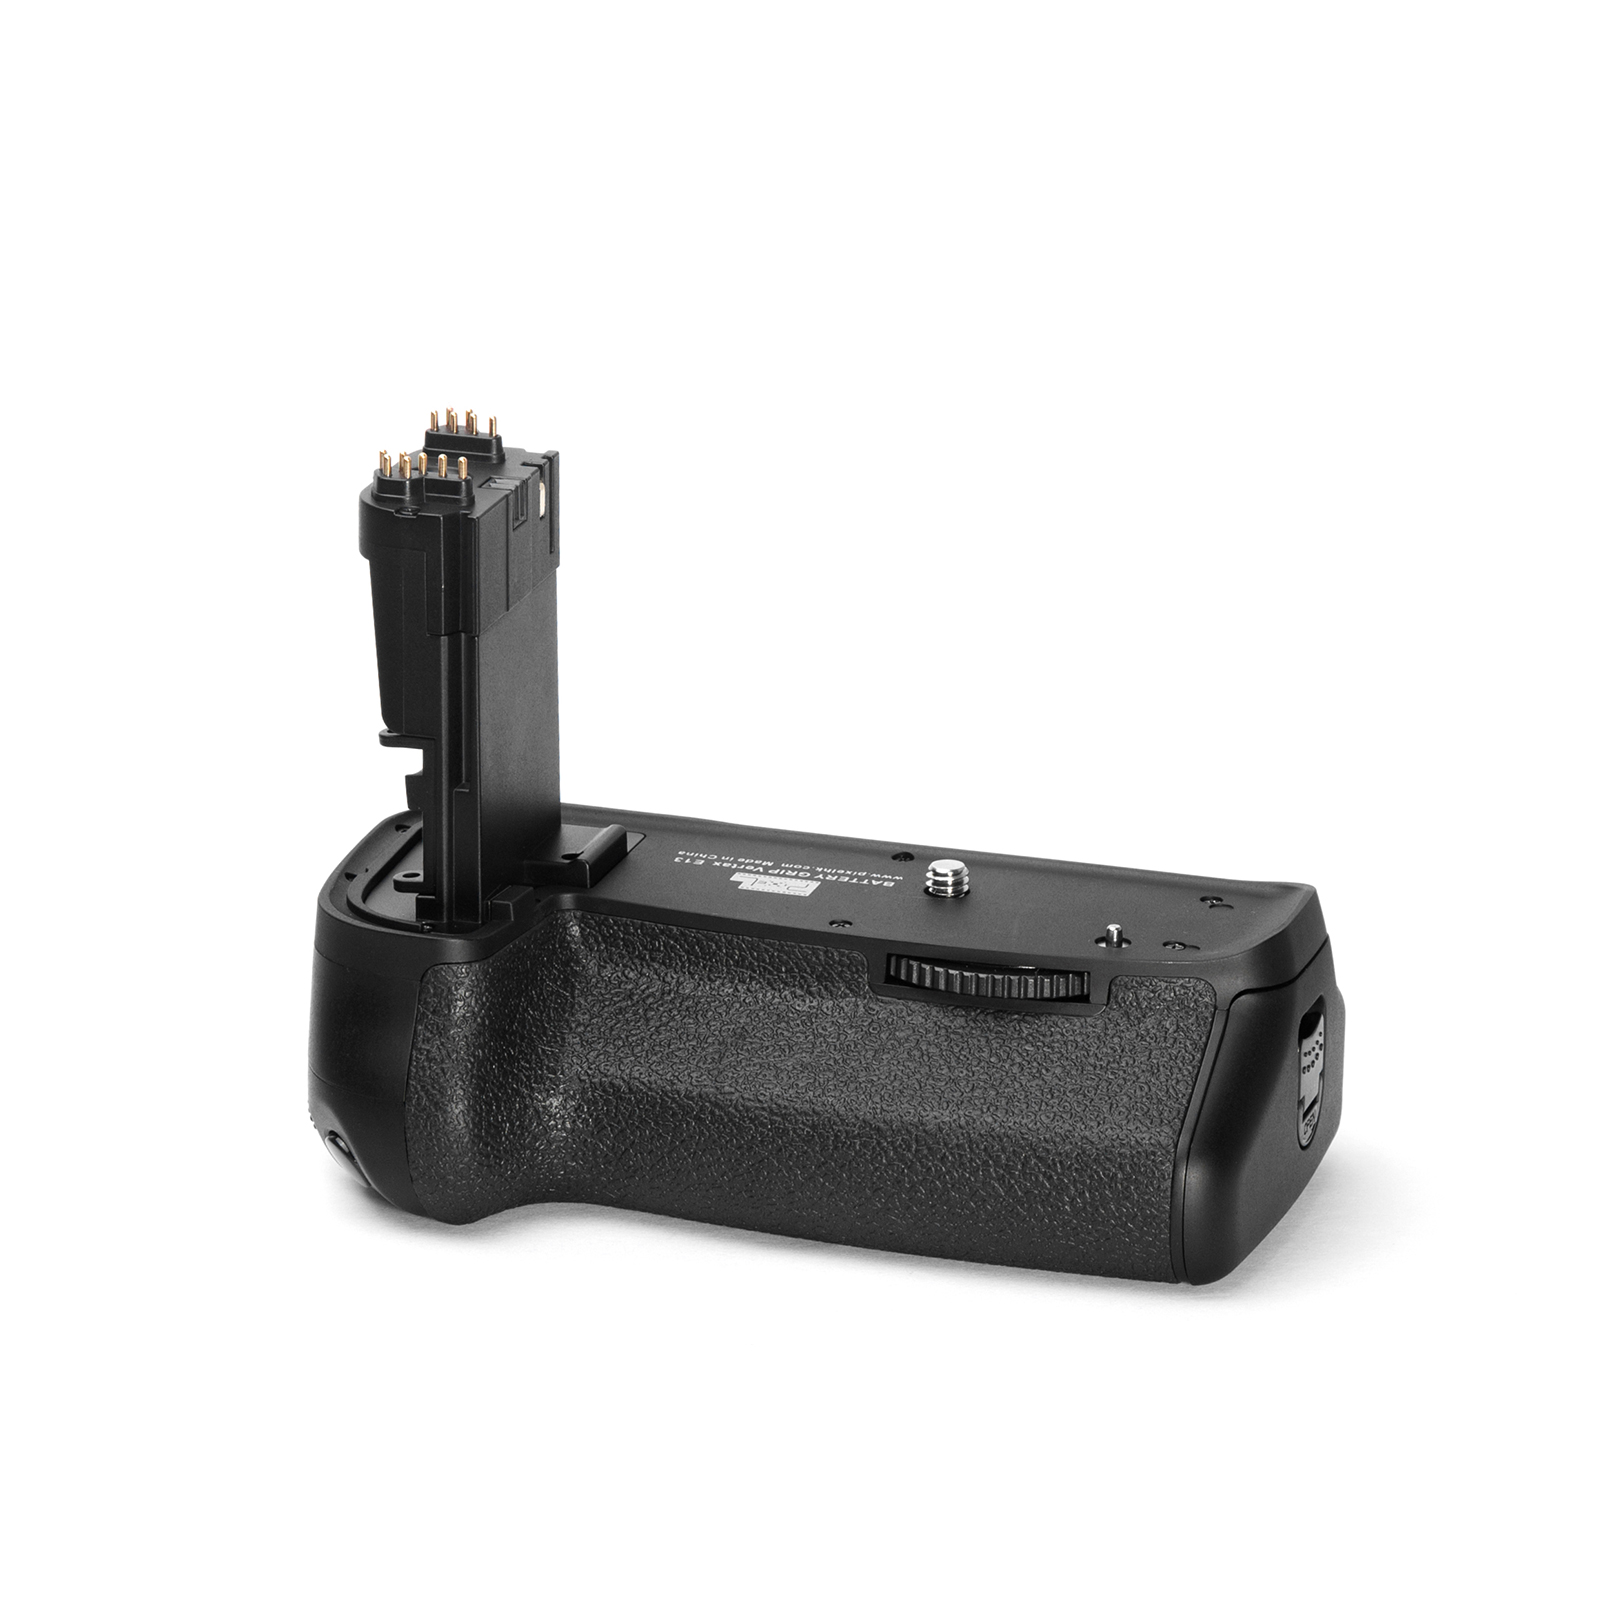 Pixel Vertax E13 Battery grip For Canon 6D, powerful endurance and arbitrary operation.